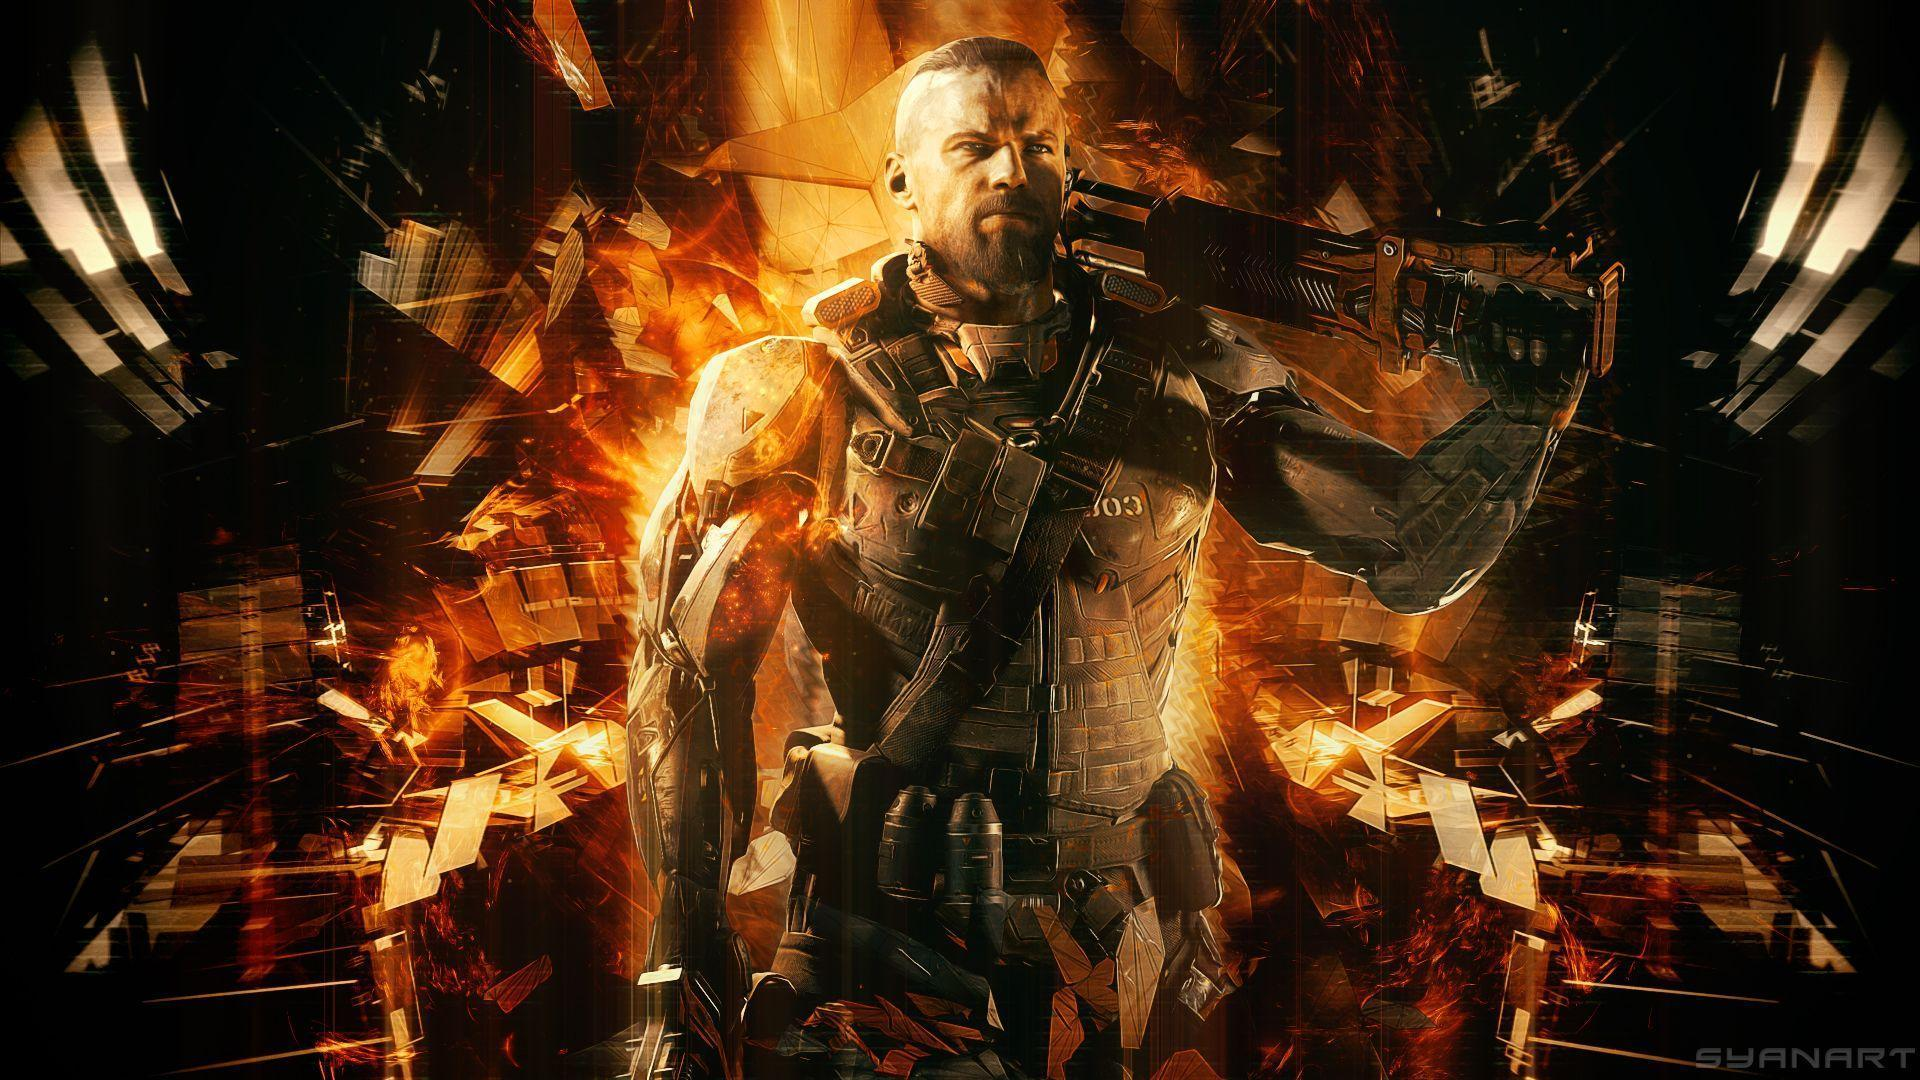 Call Of Duty Black Ops 3 Hd Wallpapers: Black Ops 3 Zombies Wallpapers